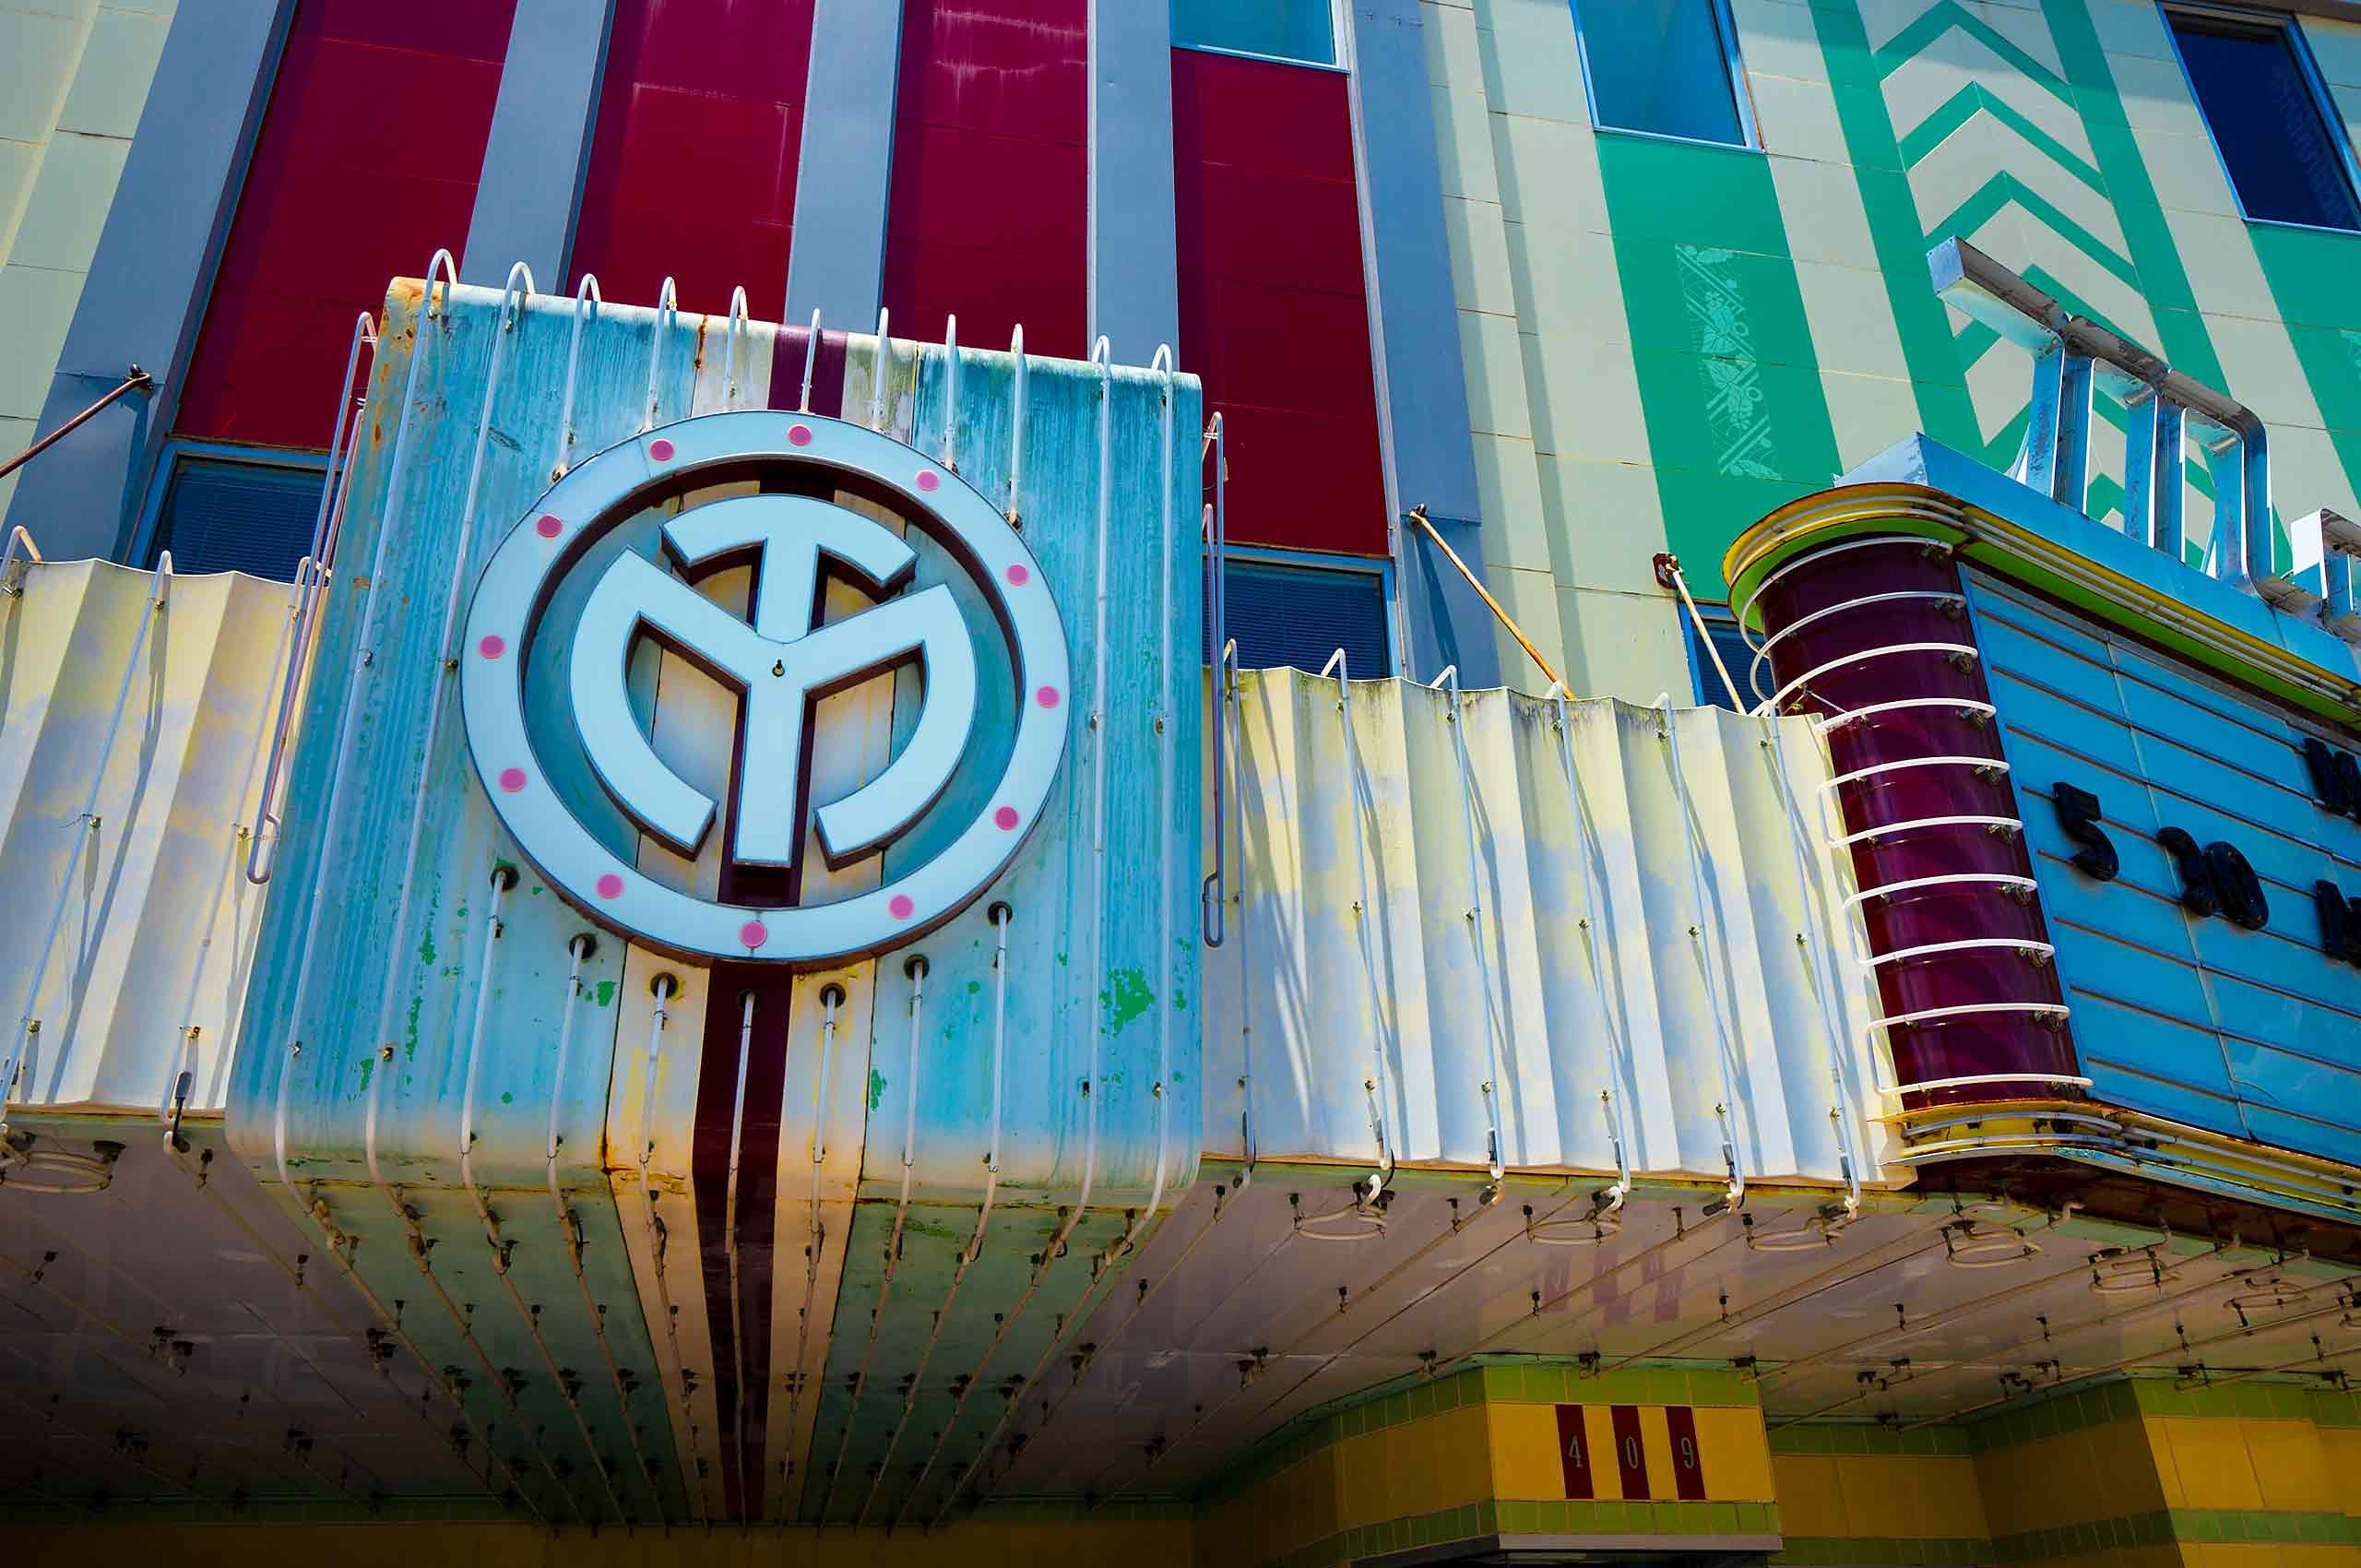 Old art deco movie theater palace in Panama City beach Flordia